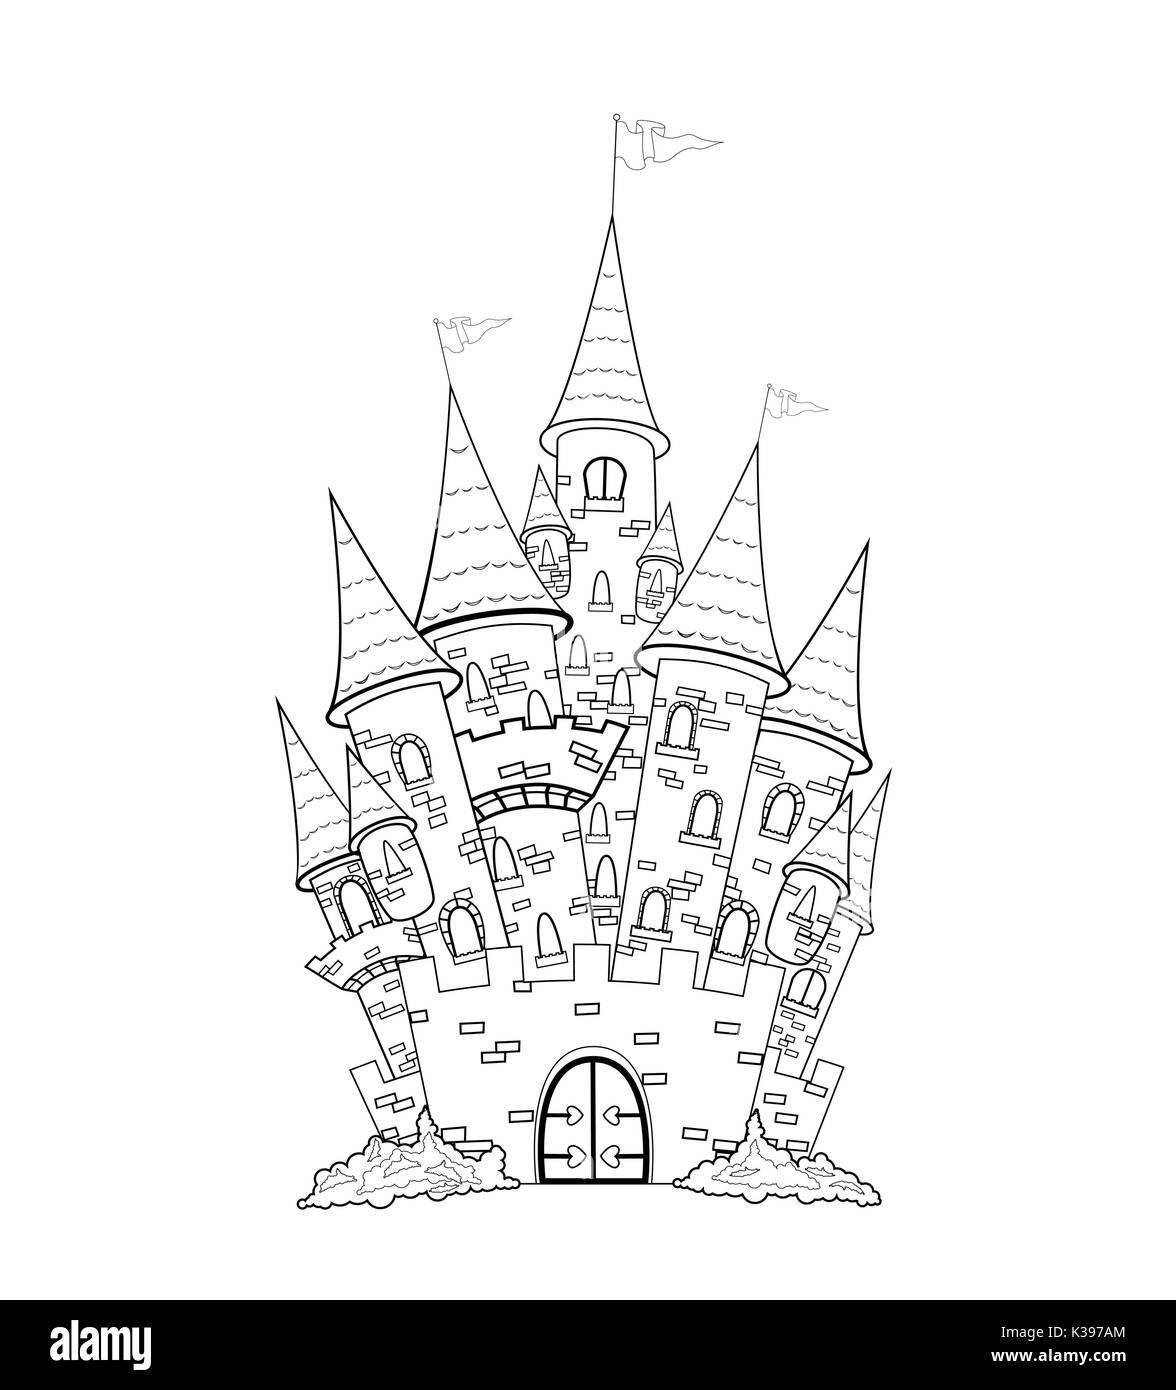 Castle Outline Sketch Of The Outlines On A White Background